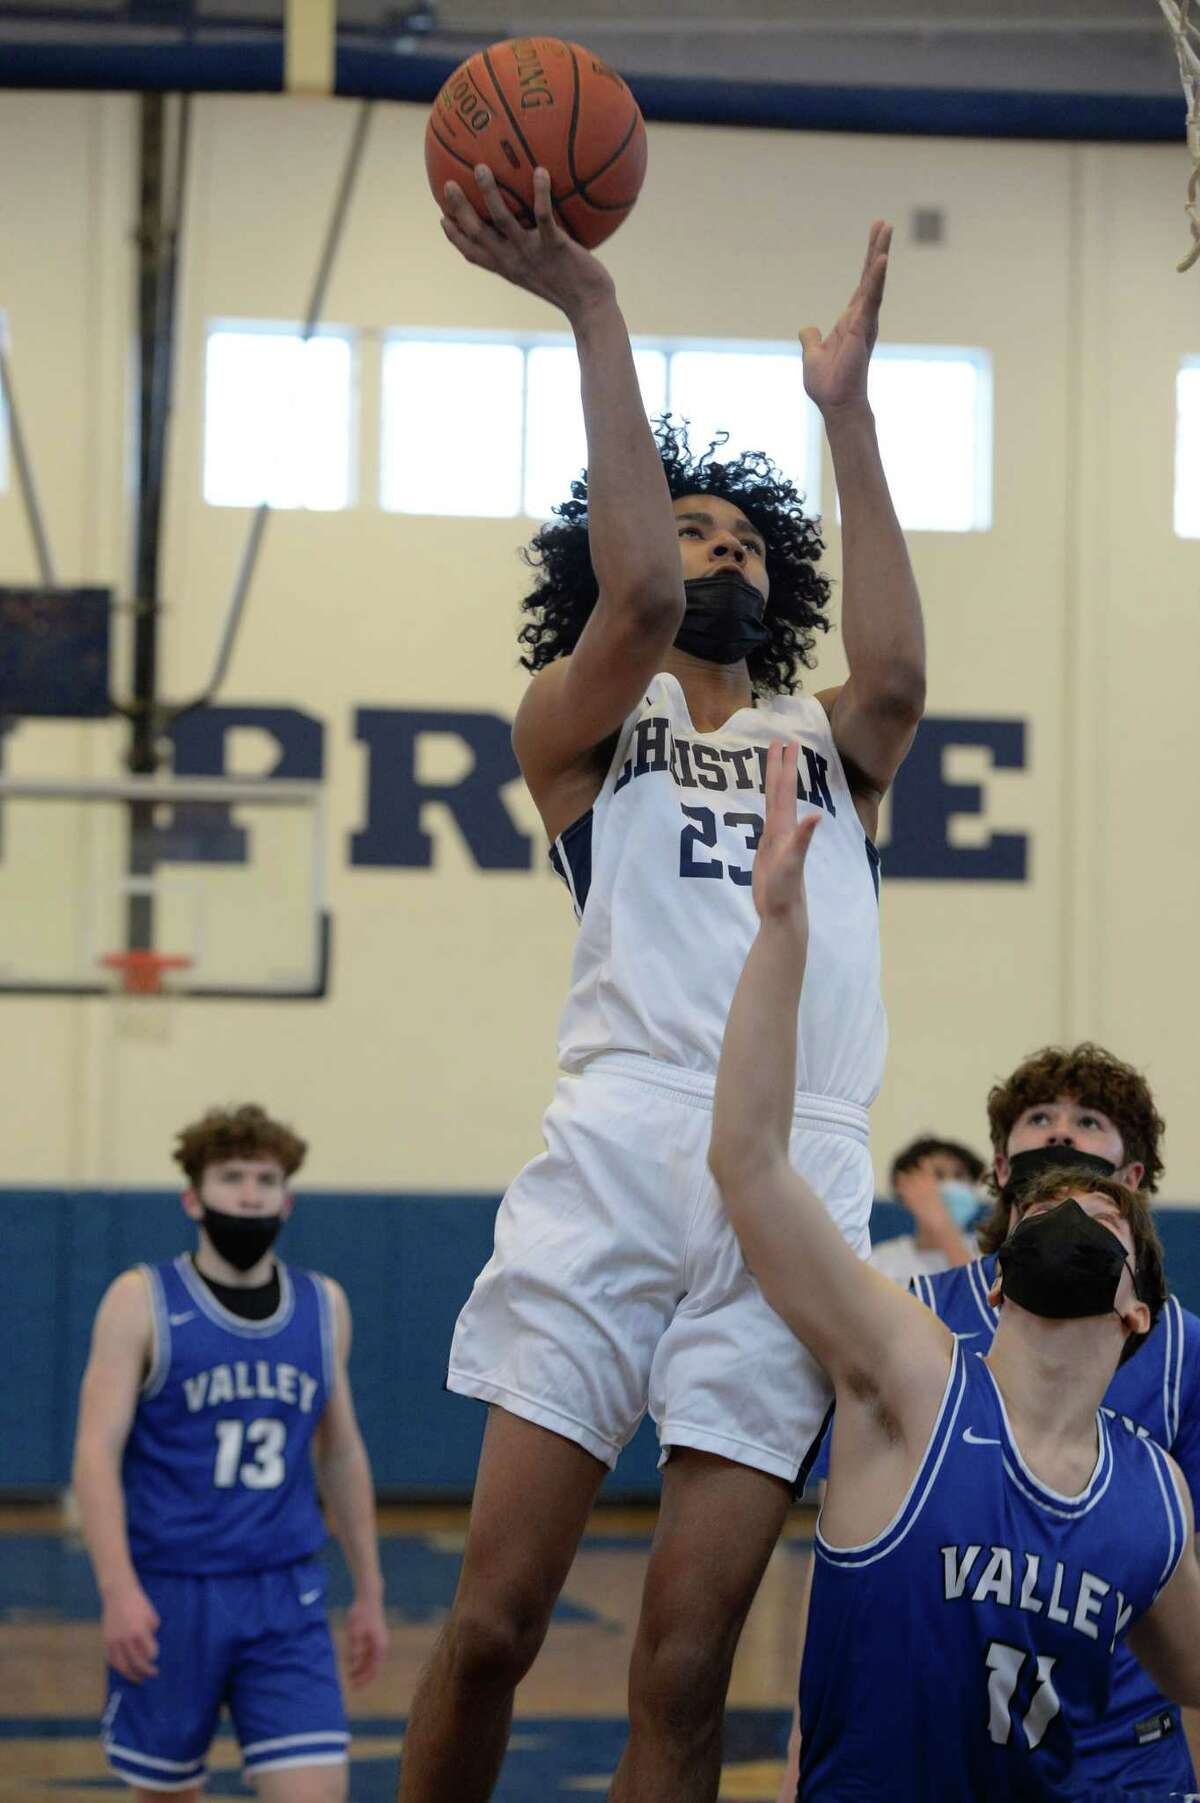 Topped all scorers with 34 points in the Lions' 78-53 win against Bishop Maginn. Here, he takes a shot over Hoosic Valley's Lane Carner during a game on Saturday, Feb. 13, 2021.